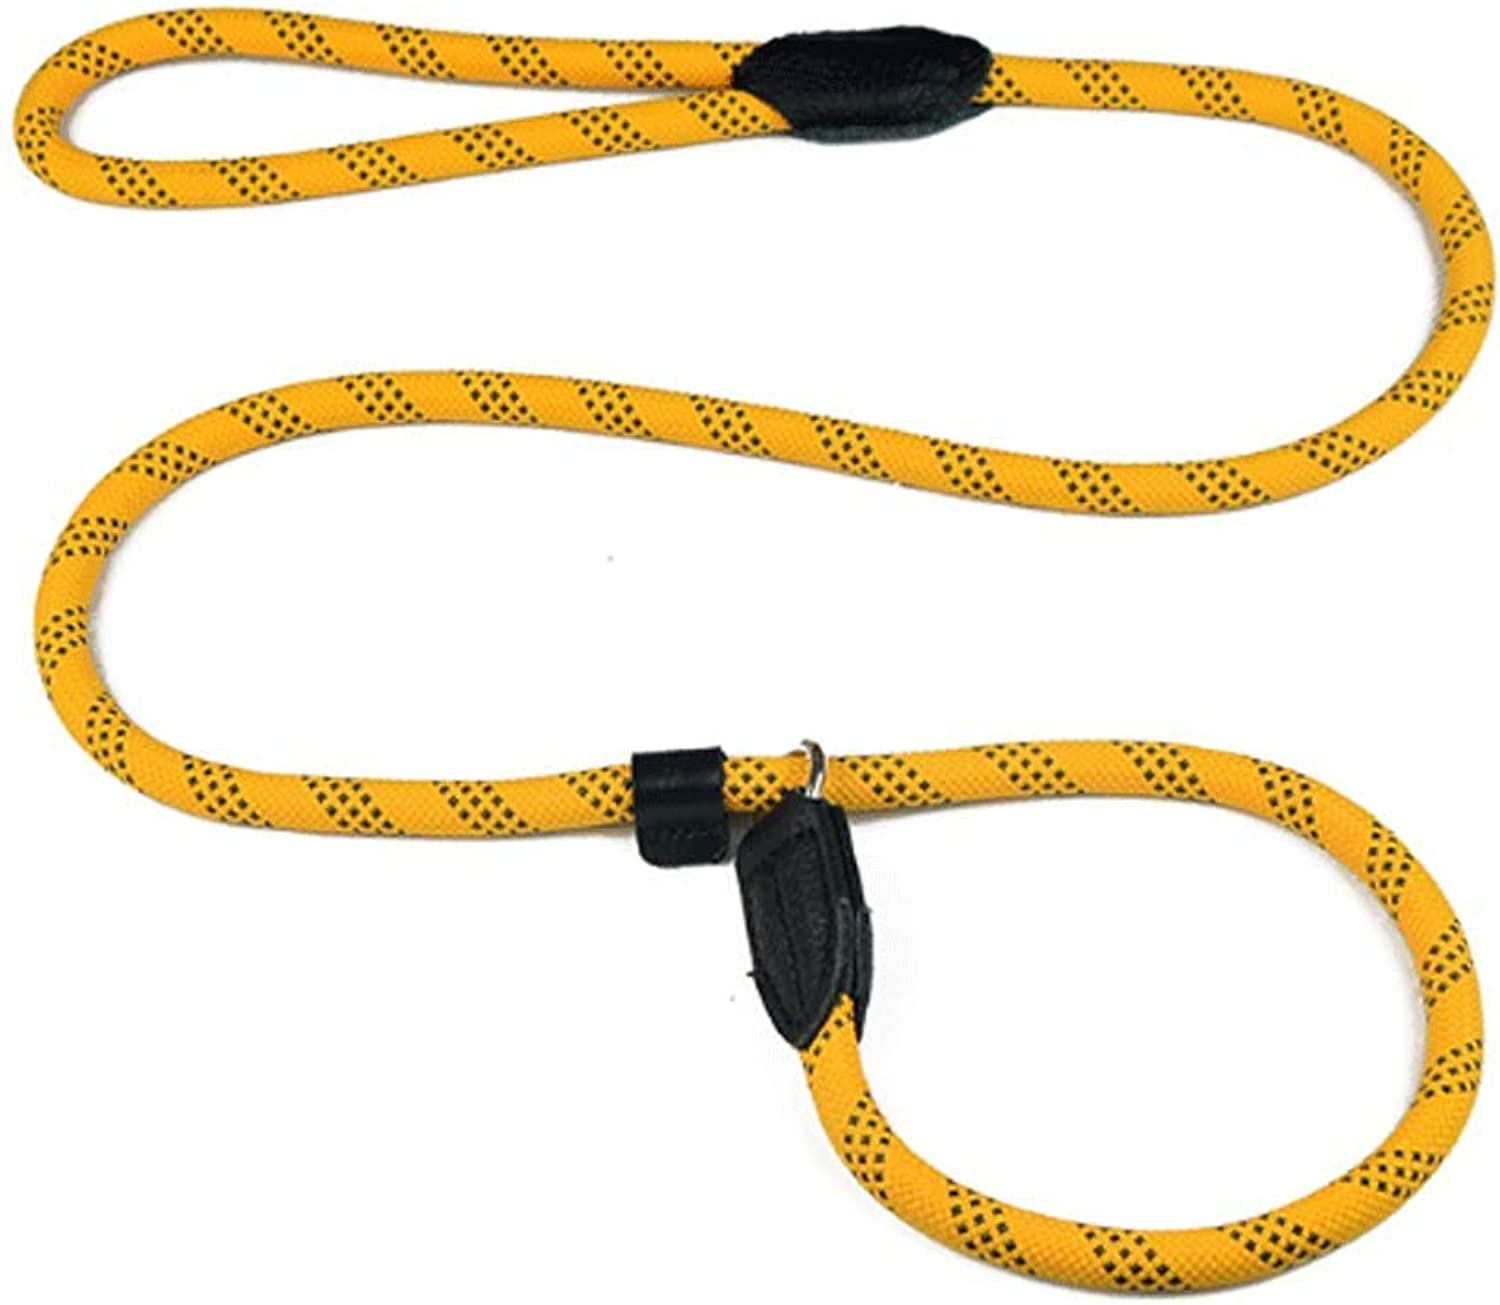 P Chain Light Training Dog Rope Collar Traction Rope Nylon Cowhide Material Medium Large Dog (color   Yellow, Size   0.75)